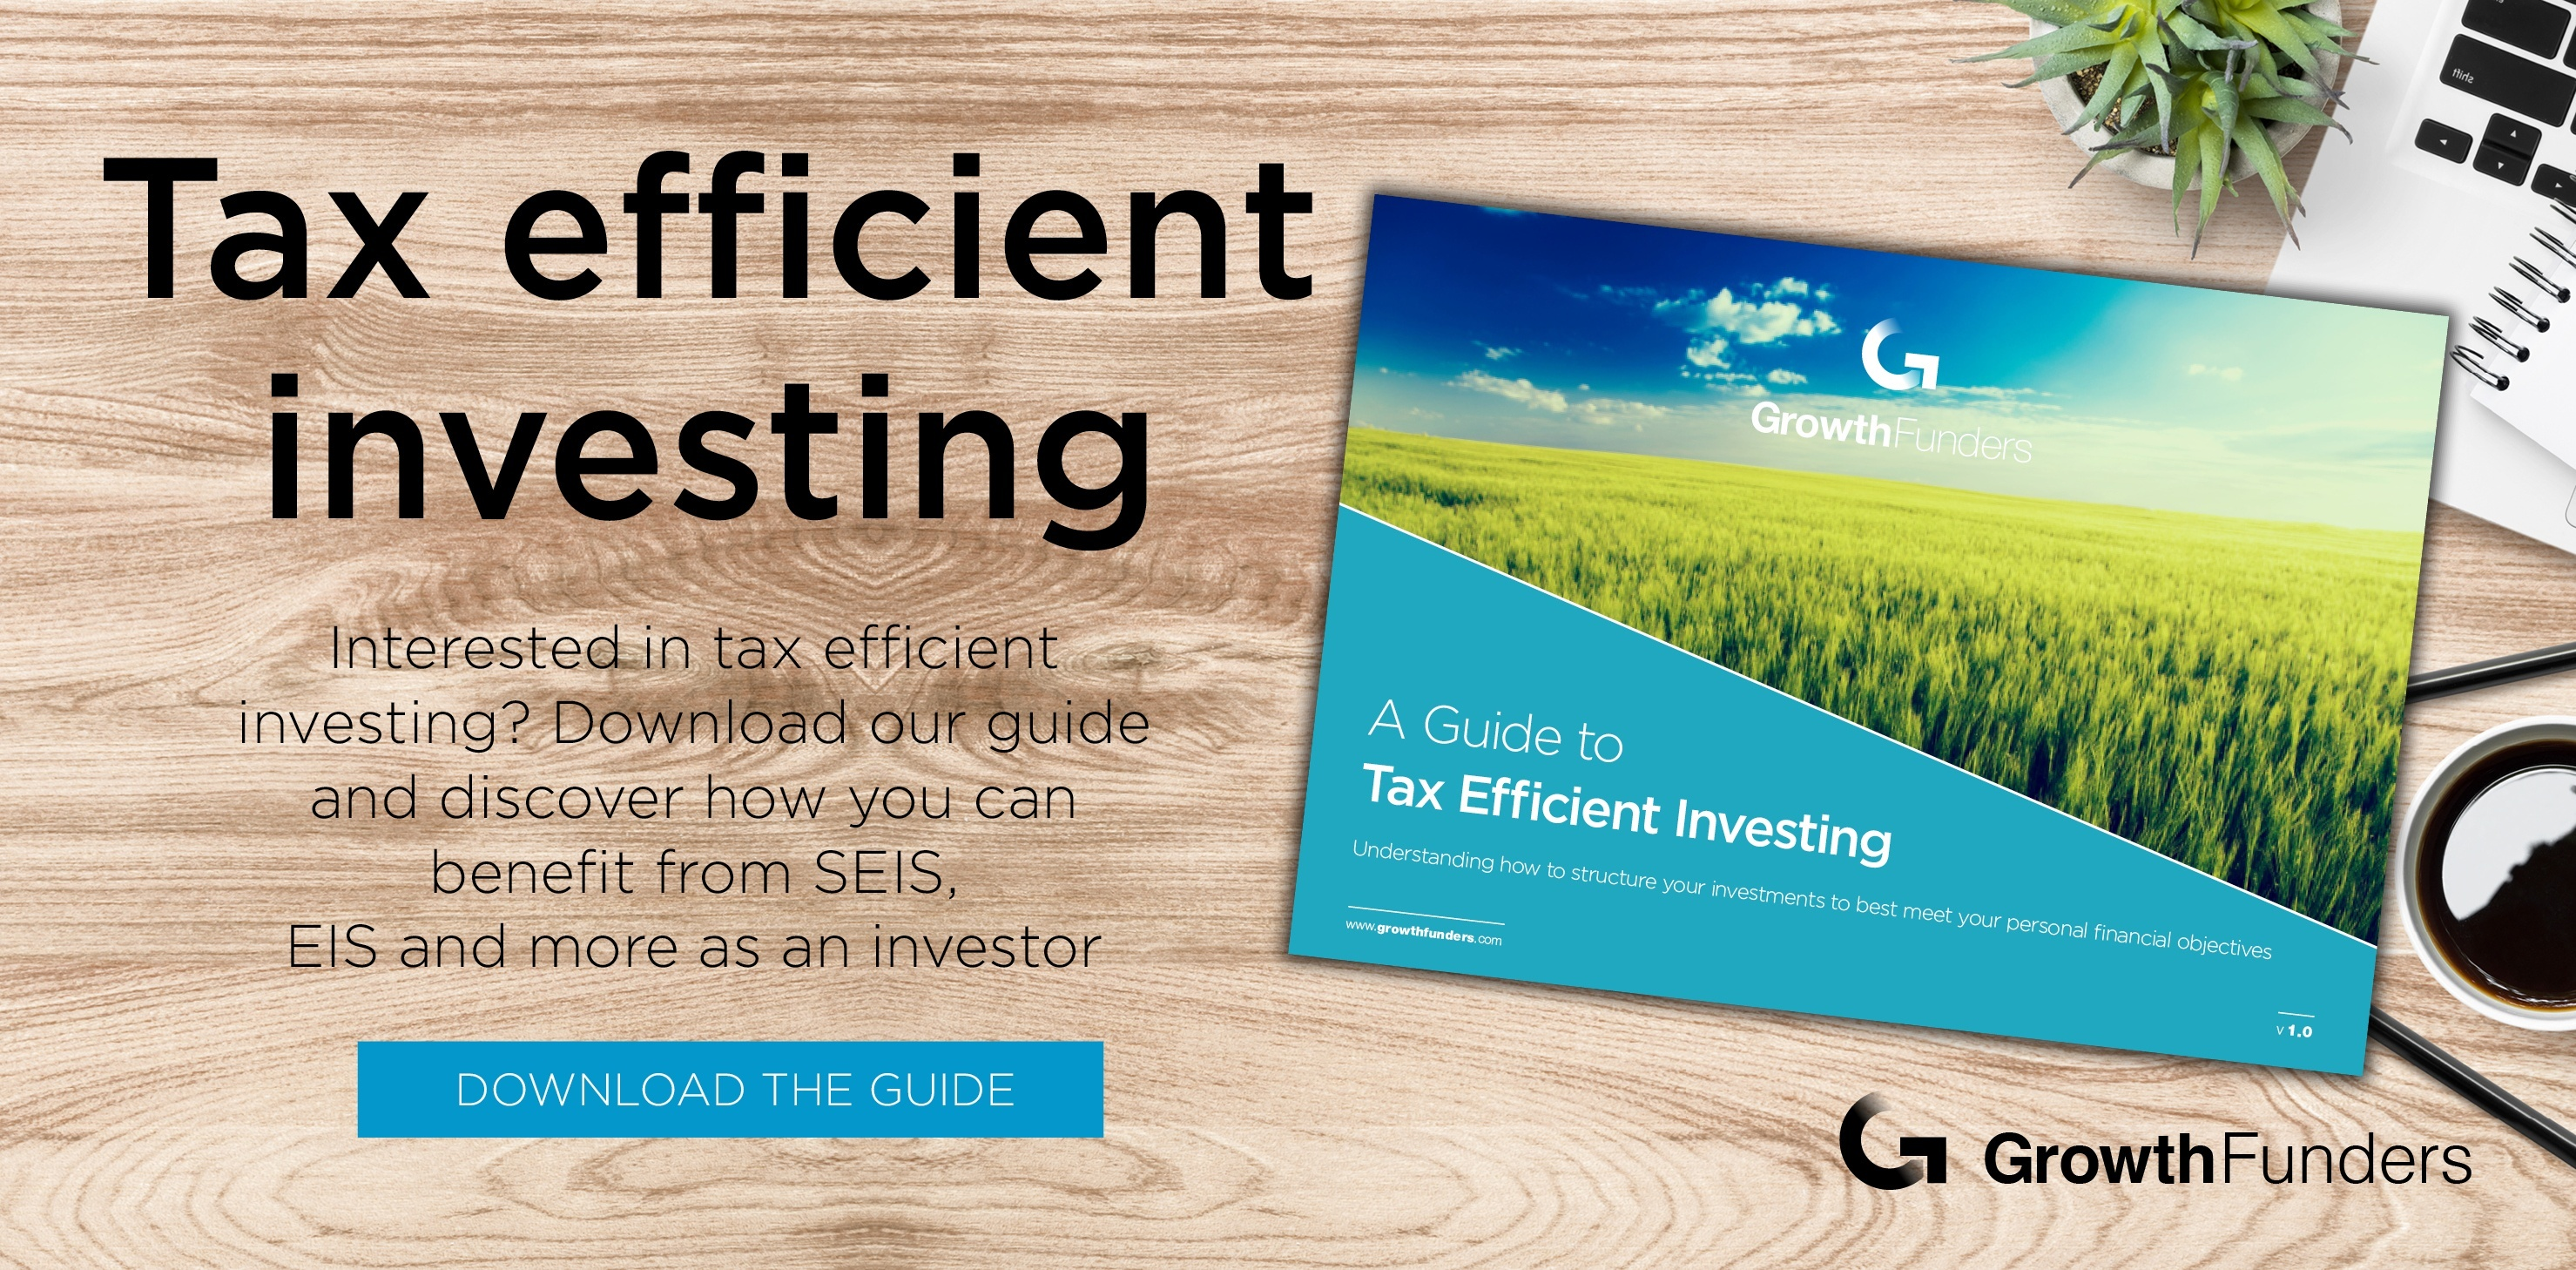 The 5 main ways to make tax efficient investments in the UK